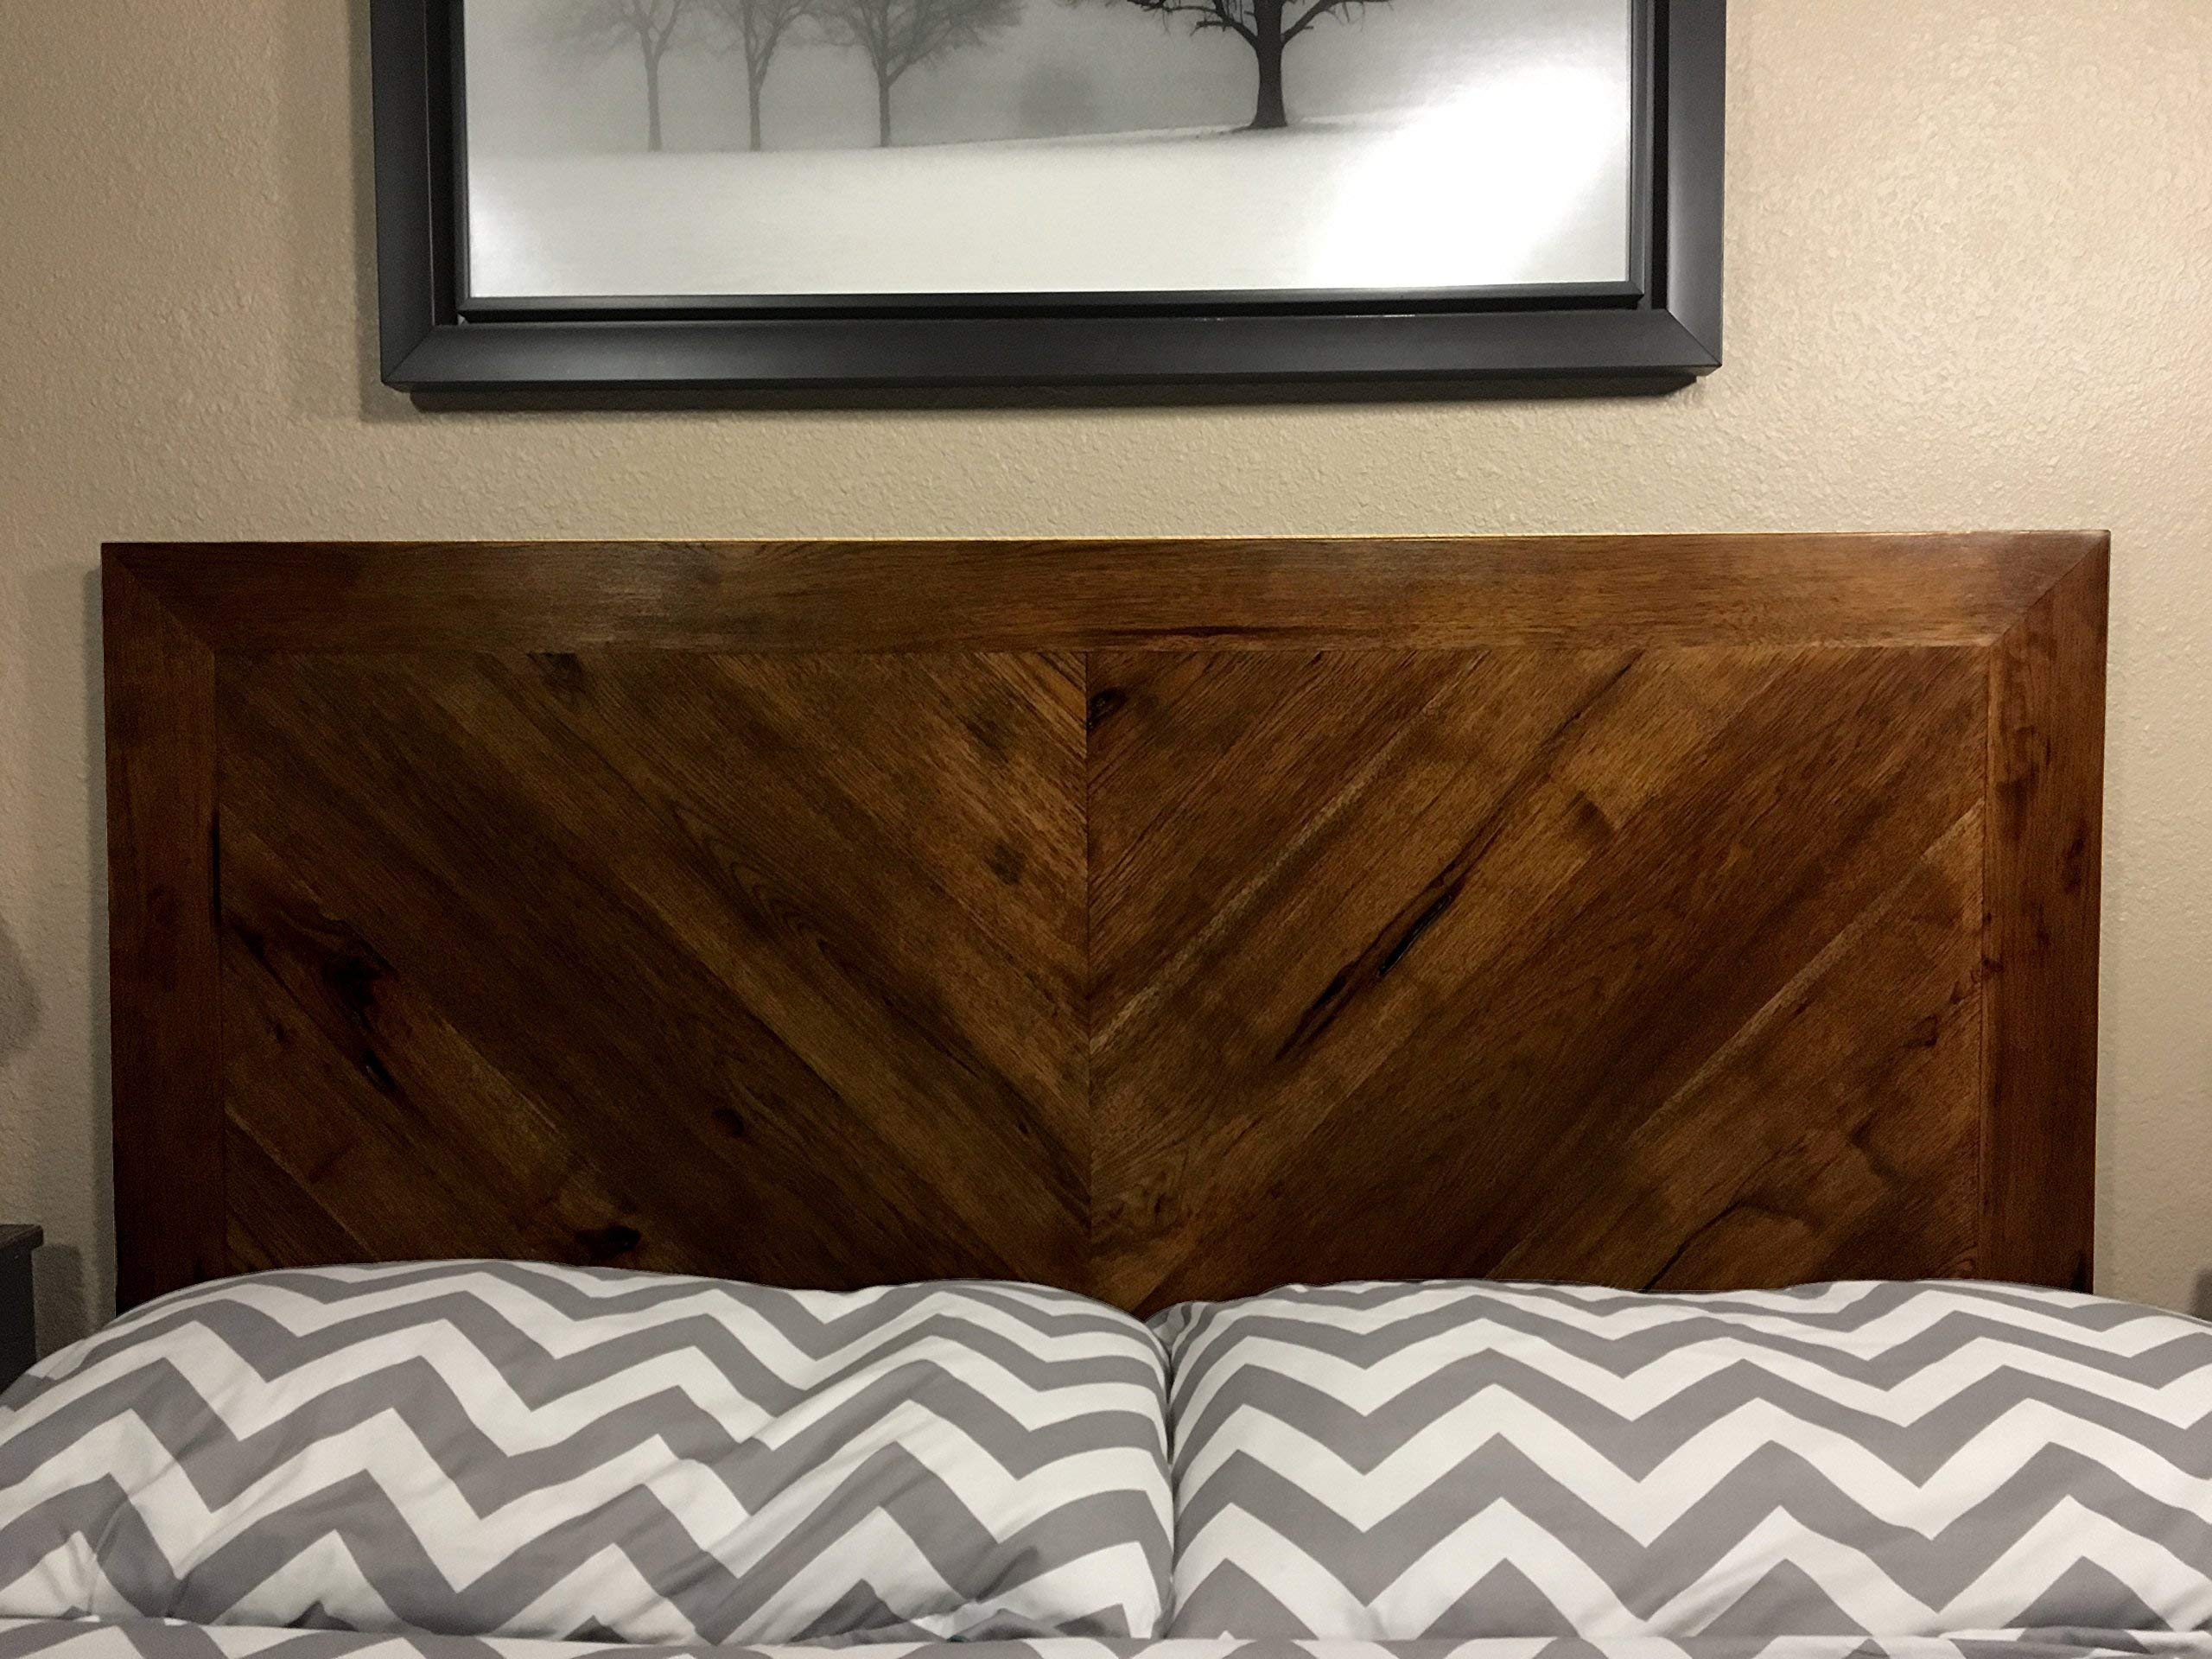 Rustic Headboard Wood by CW Furniture King Queen Twin Full Size Custom Handmade Country Ranch Solid Hardwood Legs Wall Mount French Cleat Bedroom by Candlewood Furniture